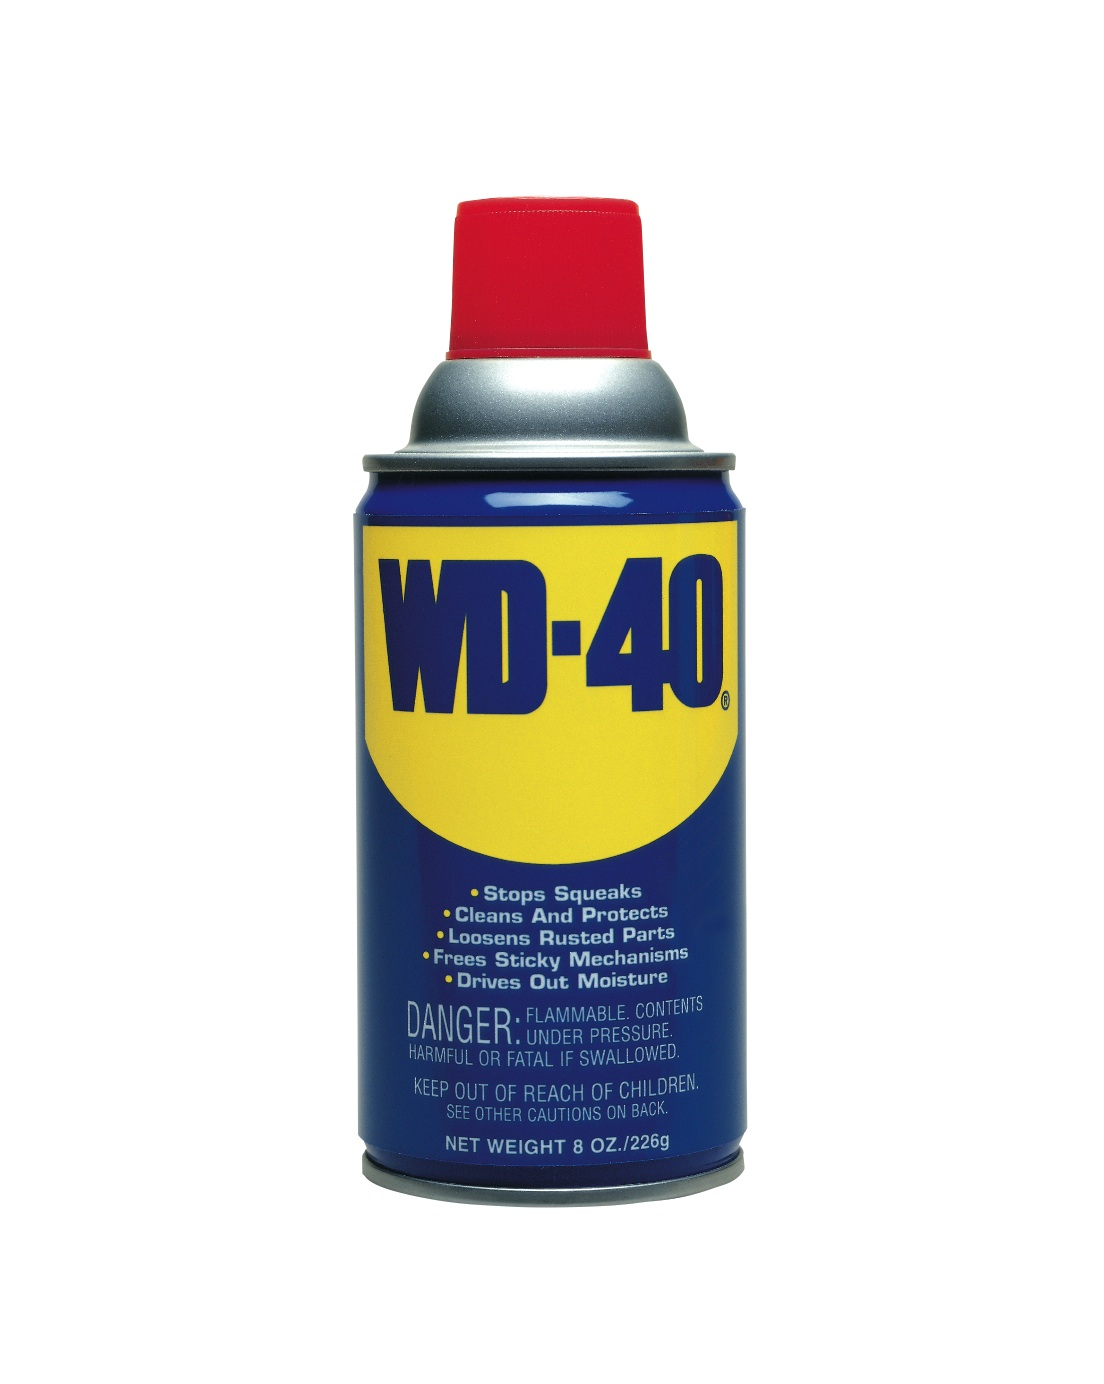 Wd 40 Uses For Car Plastic And Vinyl